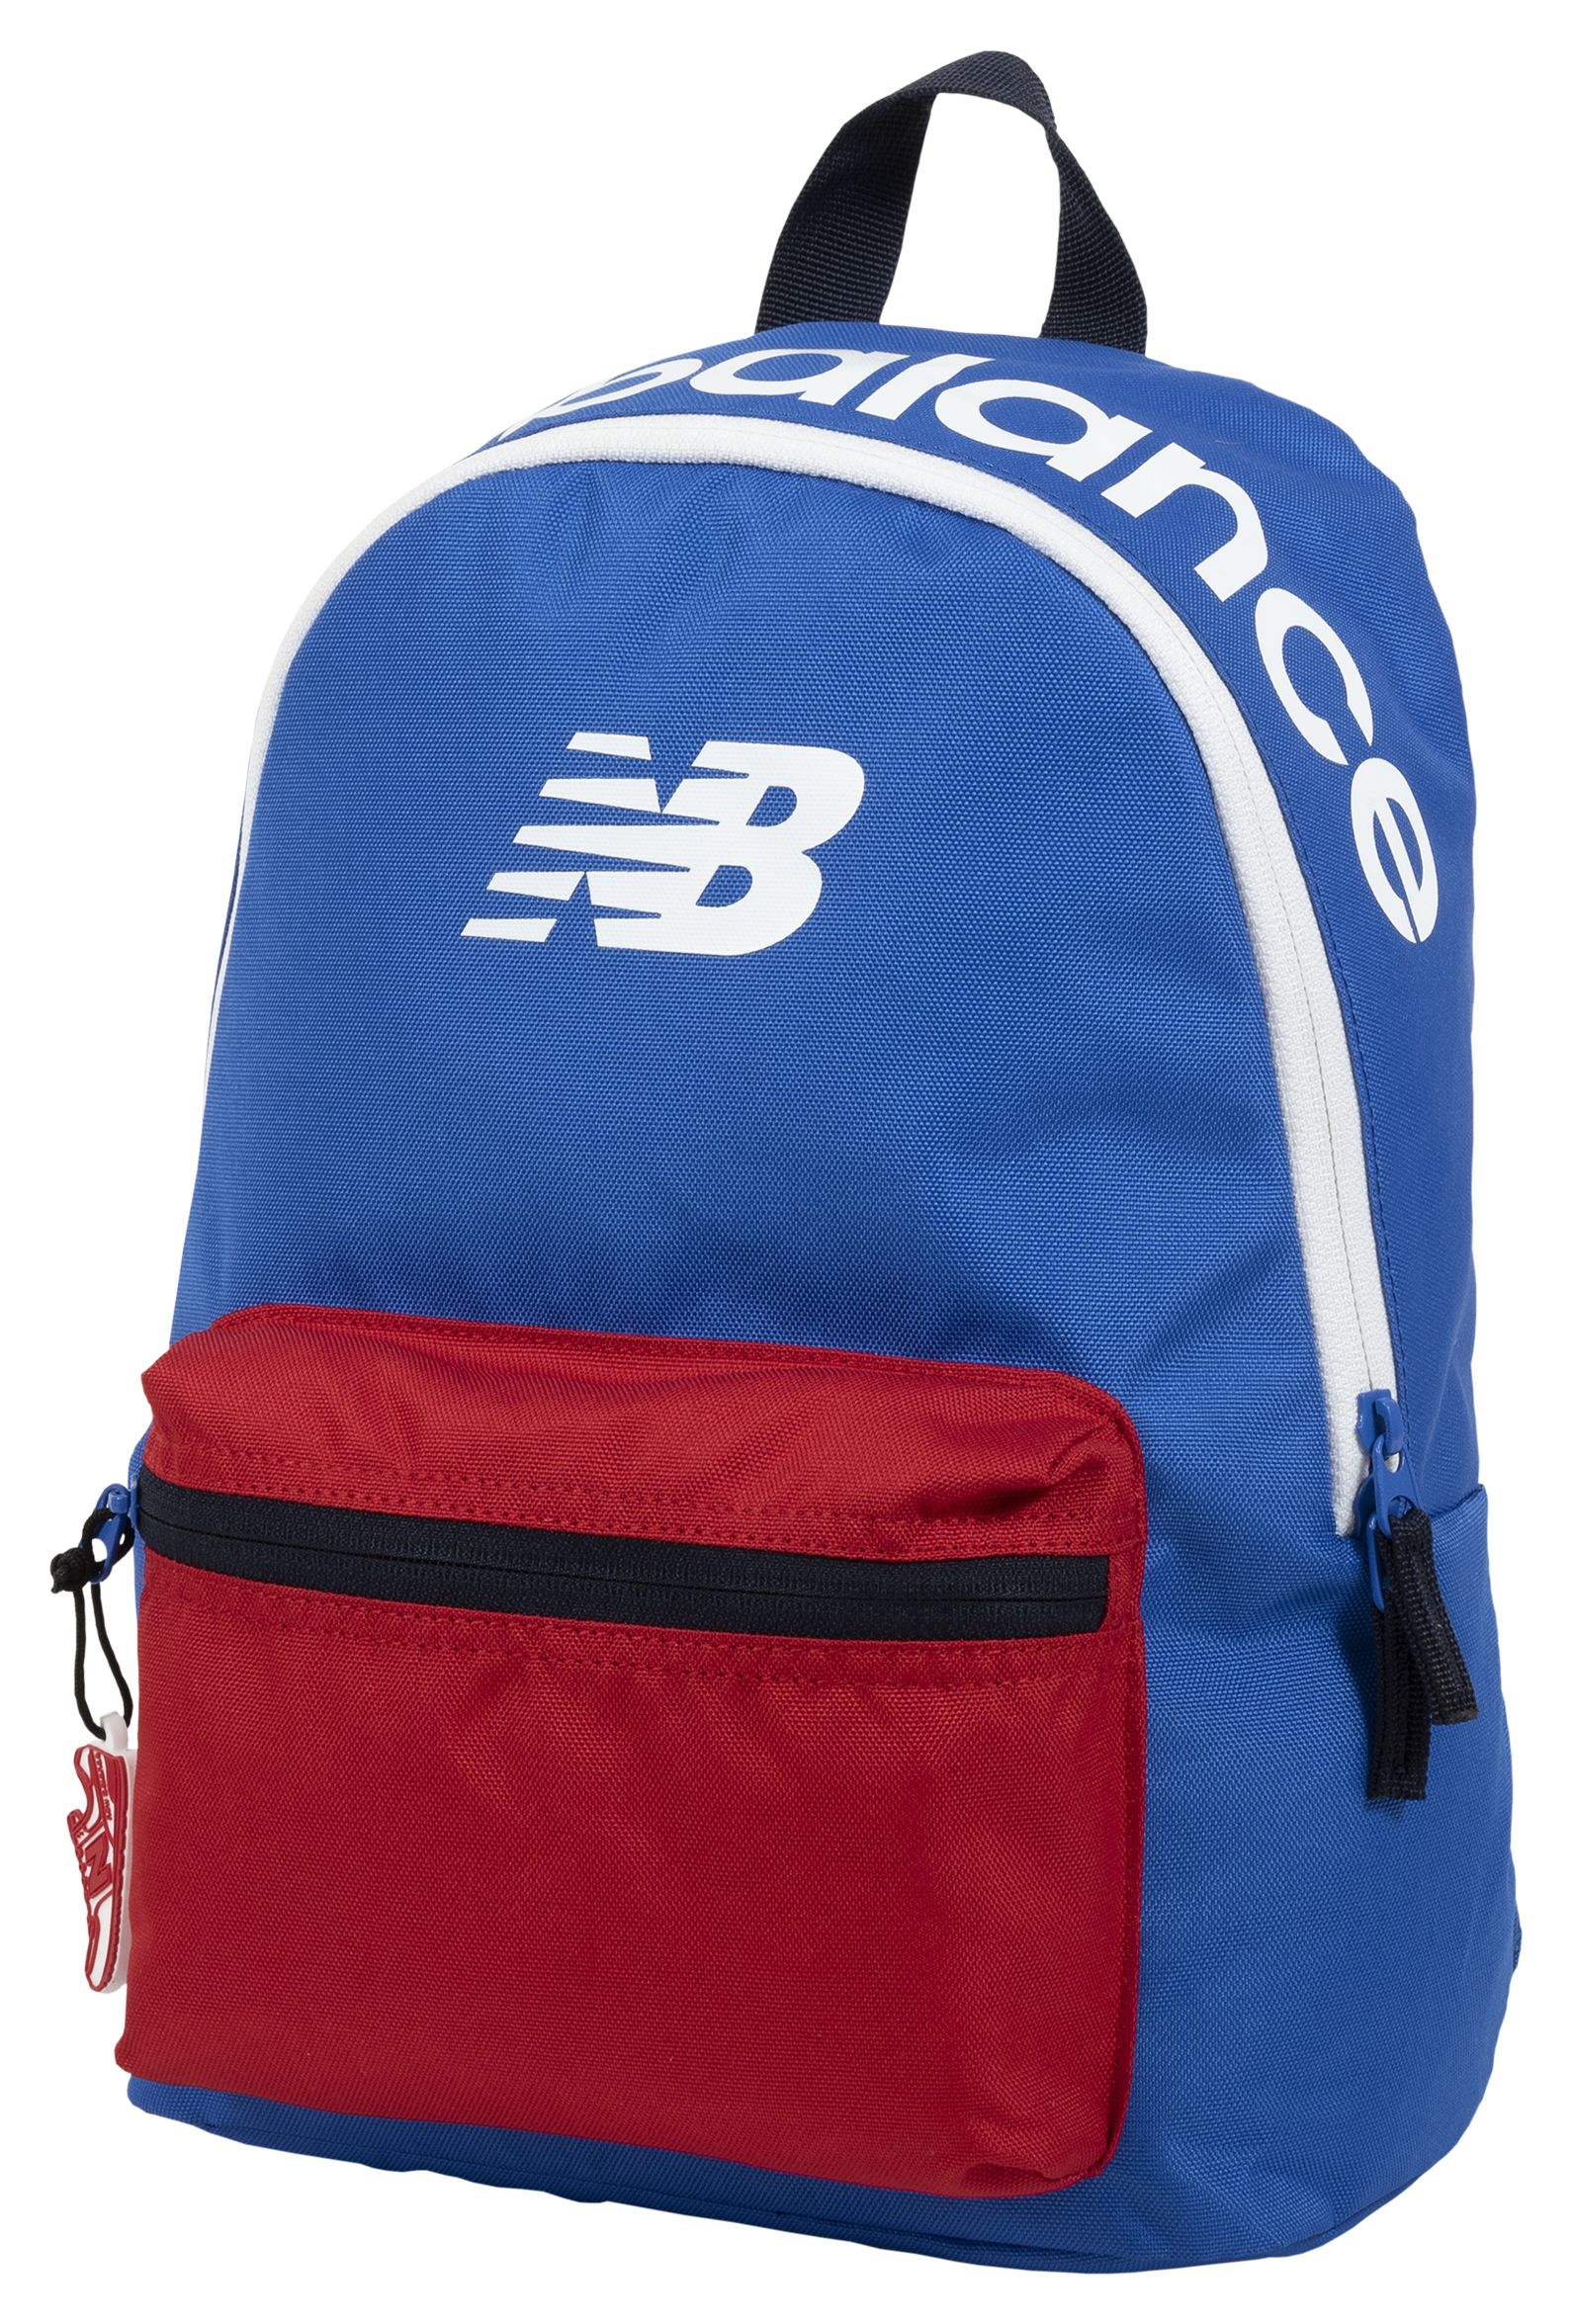 New Balance Kids Classic Backpack